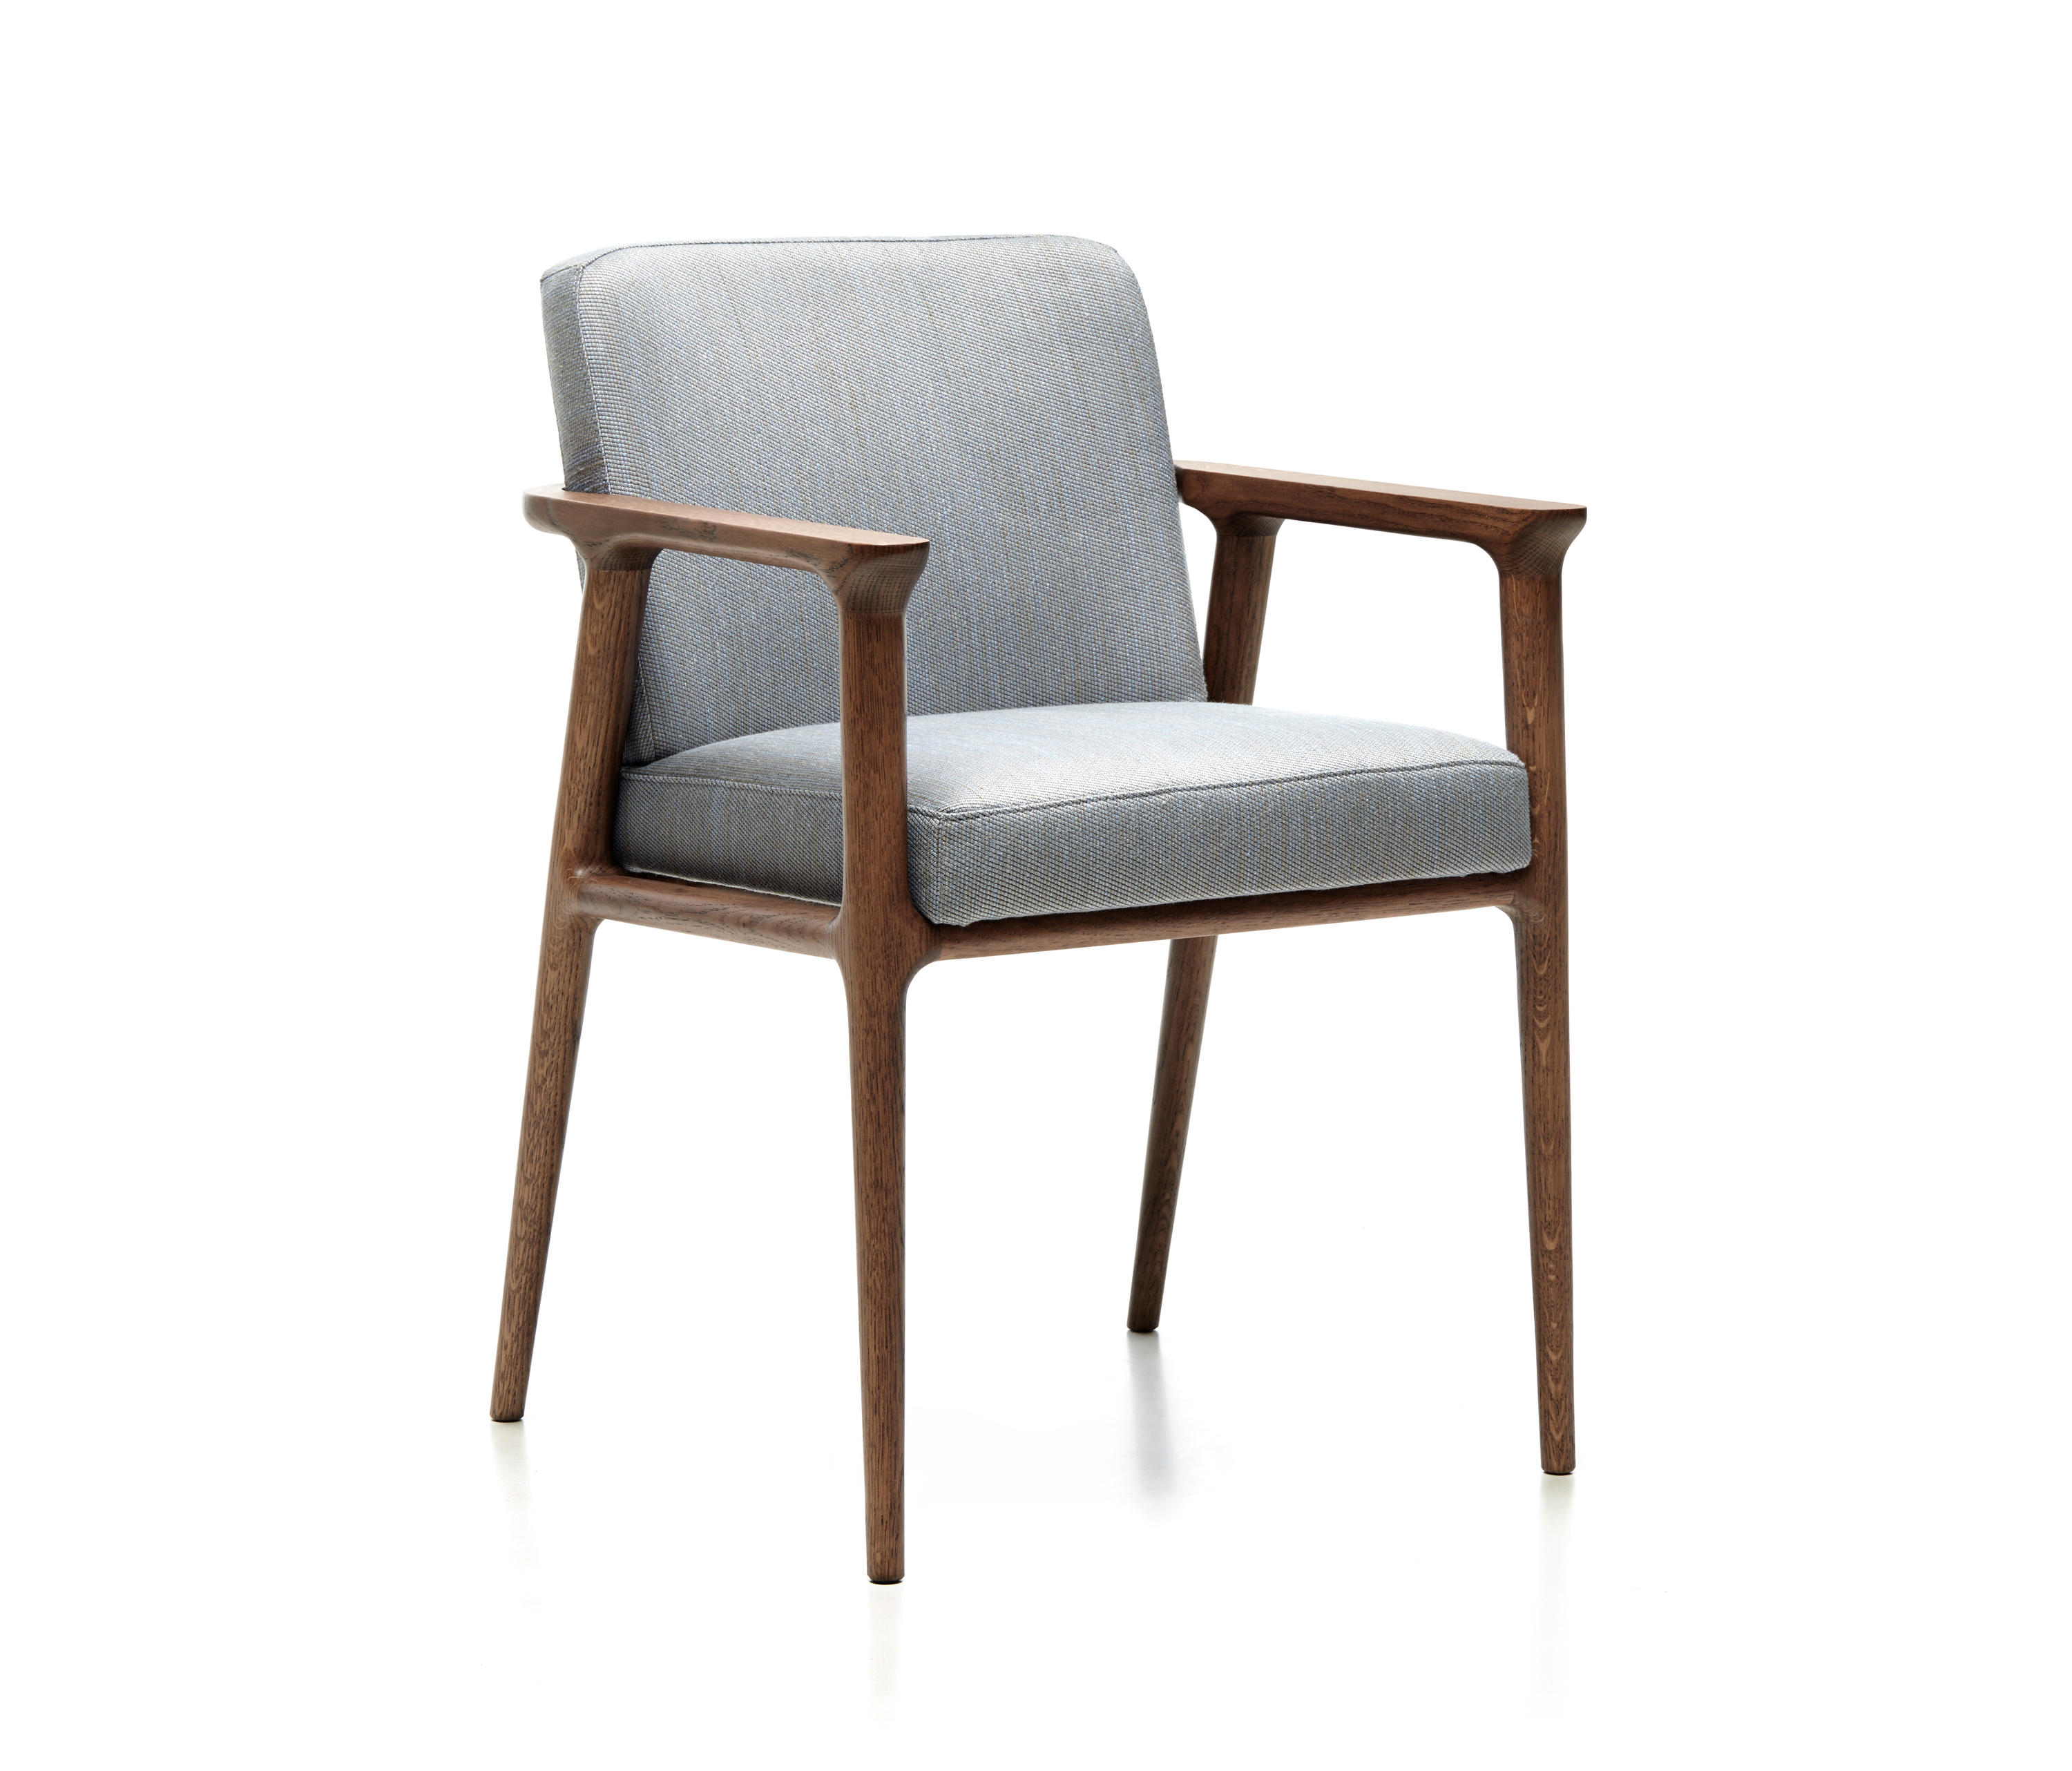 Zio Dining Chair By Moooi | Restaurant Chairs ...